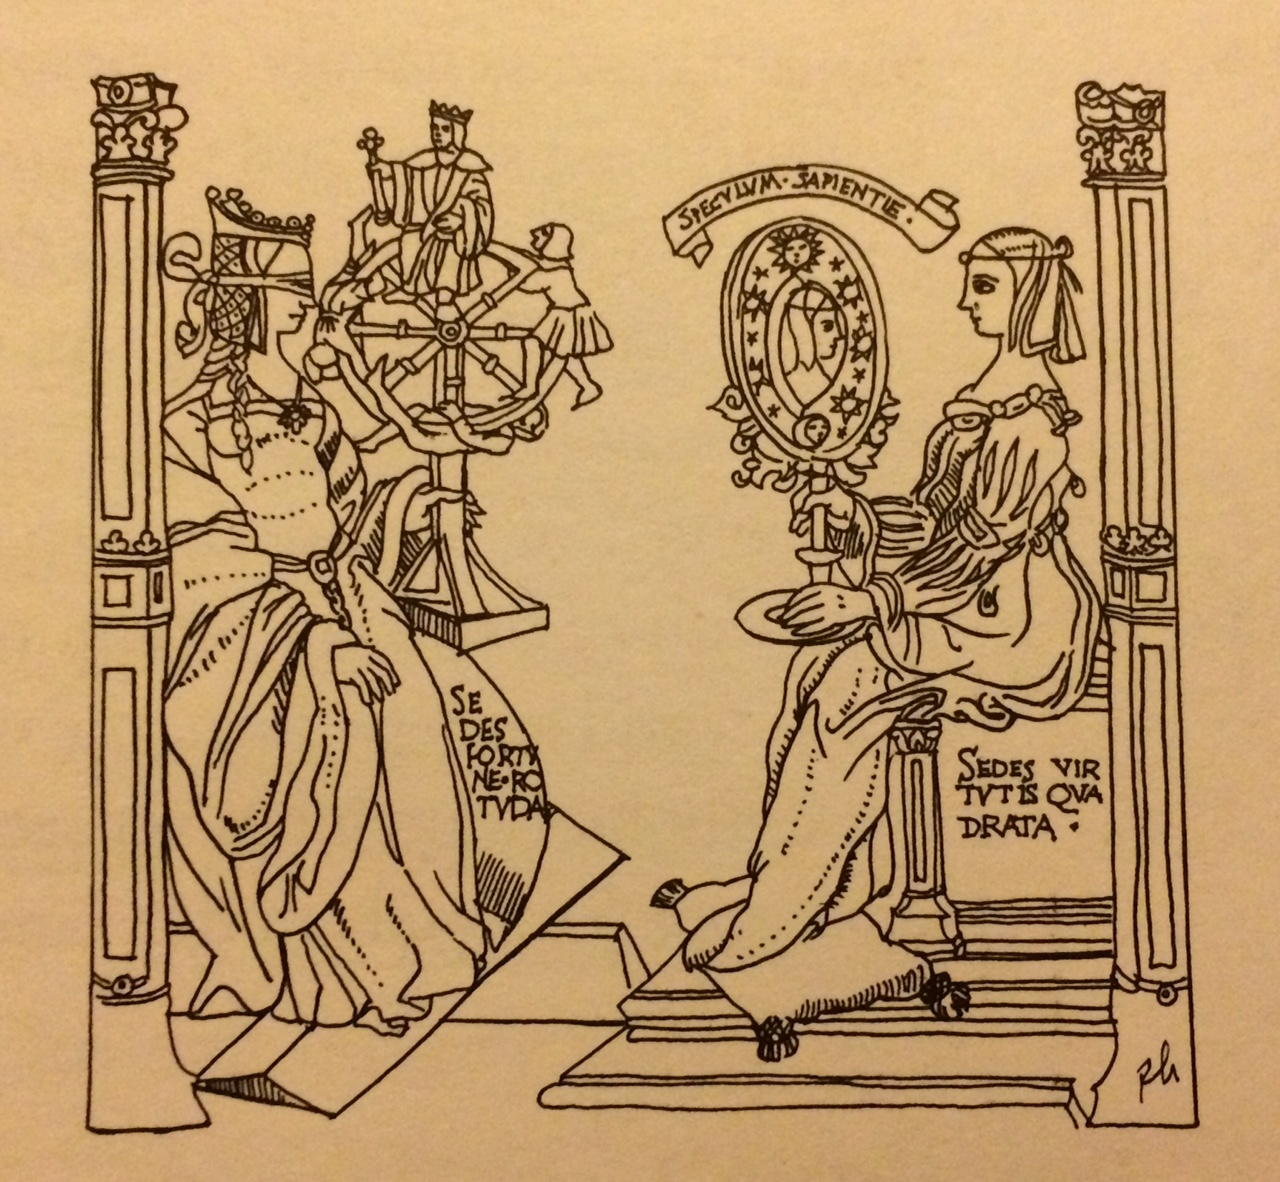 Dame Fortune pictured with here wheel opposite Dame Wisdom, holding a mirror. This comes from a sixteenth-century French engraving.